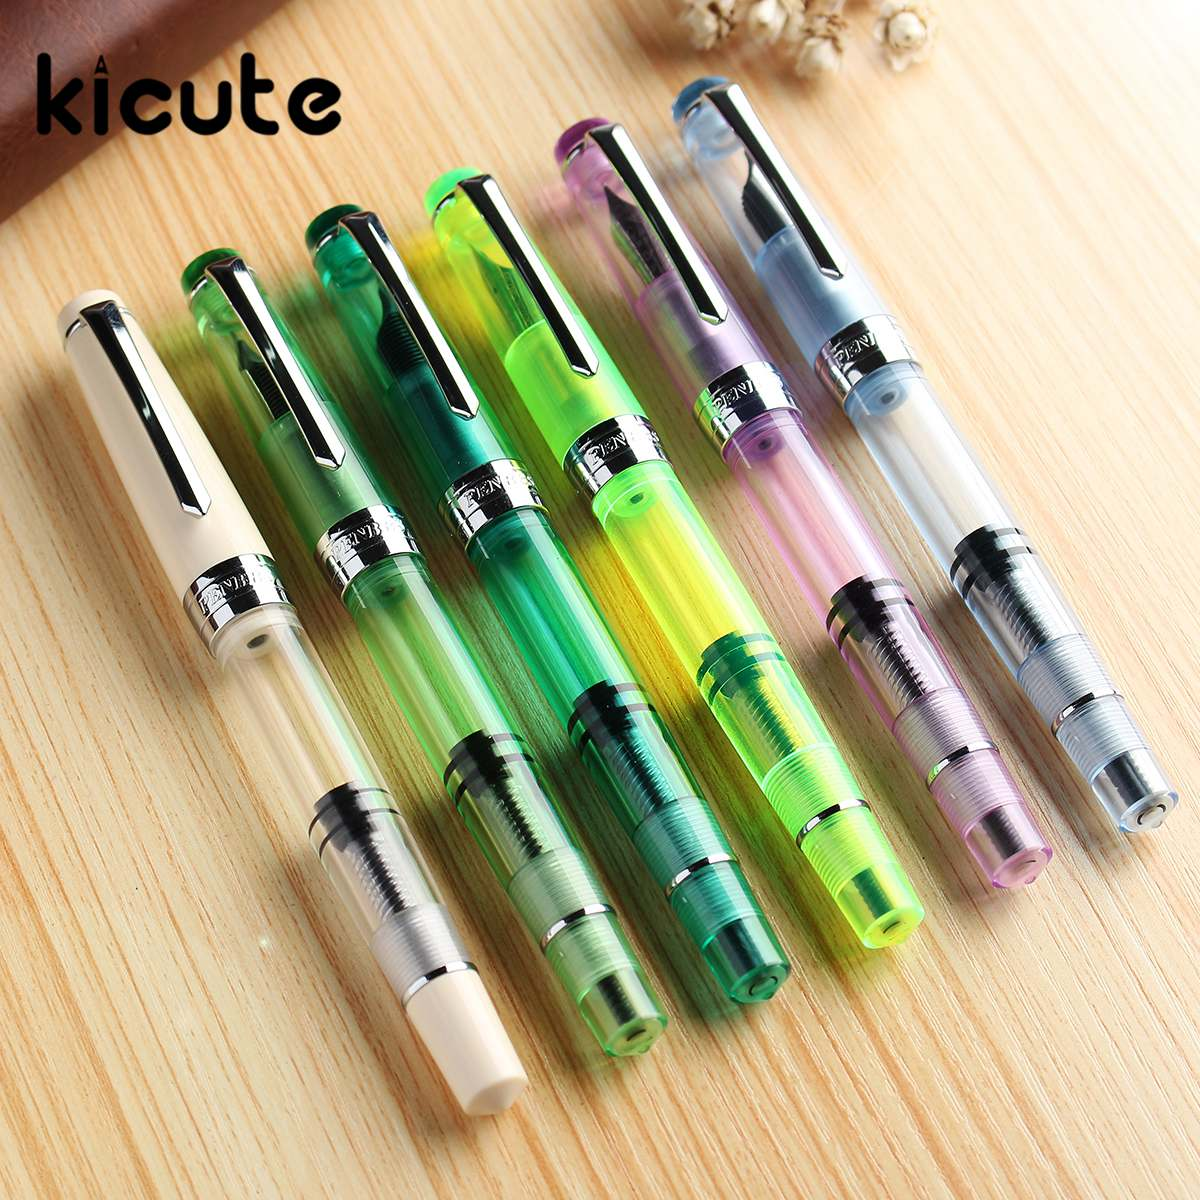 Kicute 1 pcs 0.5mm Fine Nib Transparent Piston Fountain Pen Office School Stationery Supplies Gifts for Students Smooth Writing kicute 1pcs fountain pen with silver meteor point high quality office school stationery supplies for writing gift for students